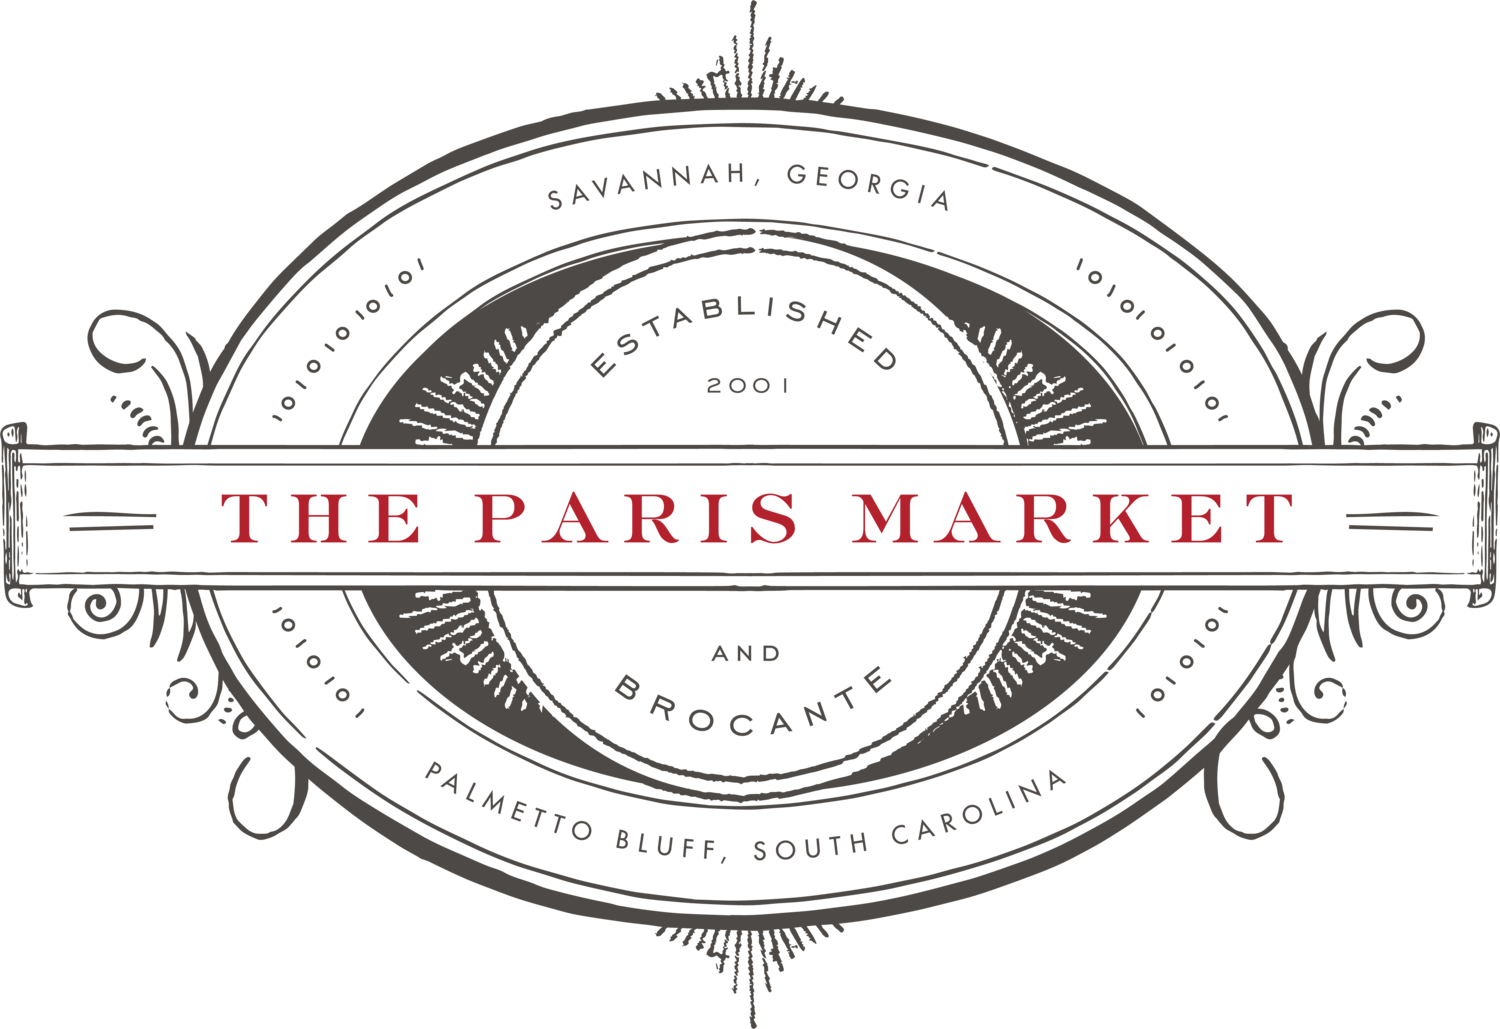 The Paris Market and Brocante